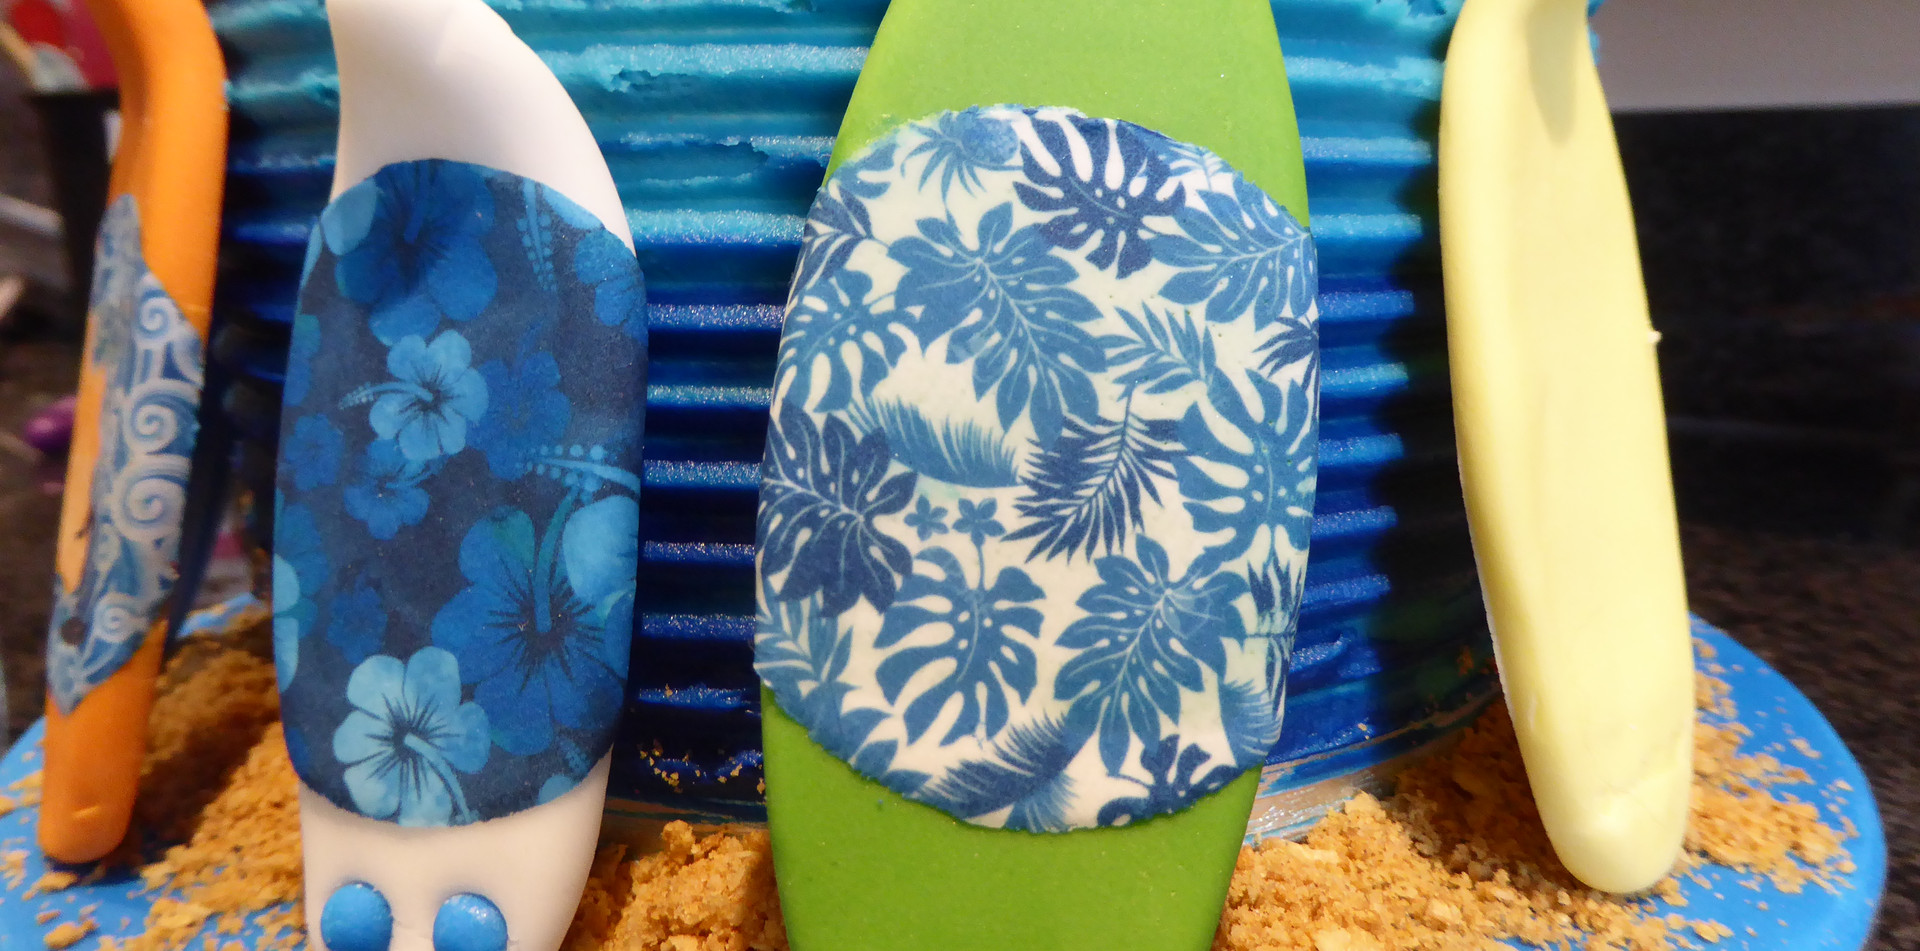 Sugarpaste surf boards with edible graphics